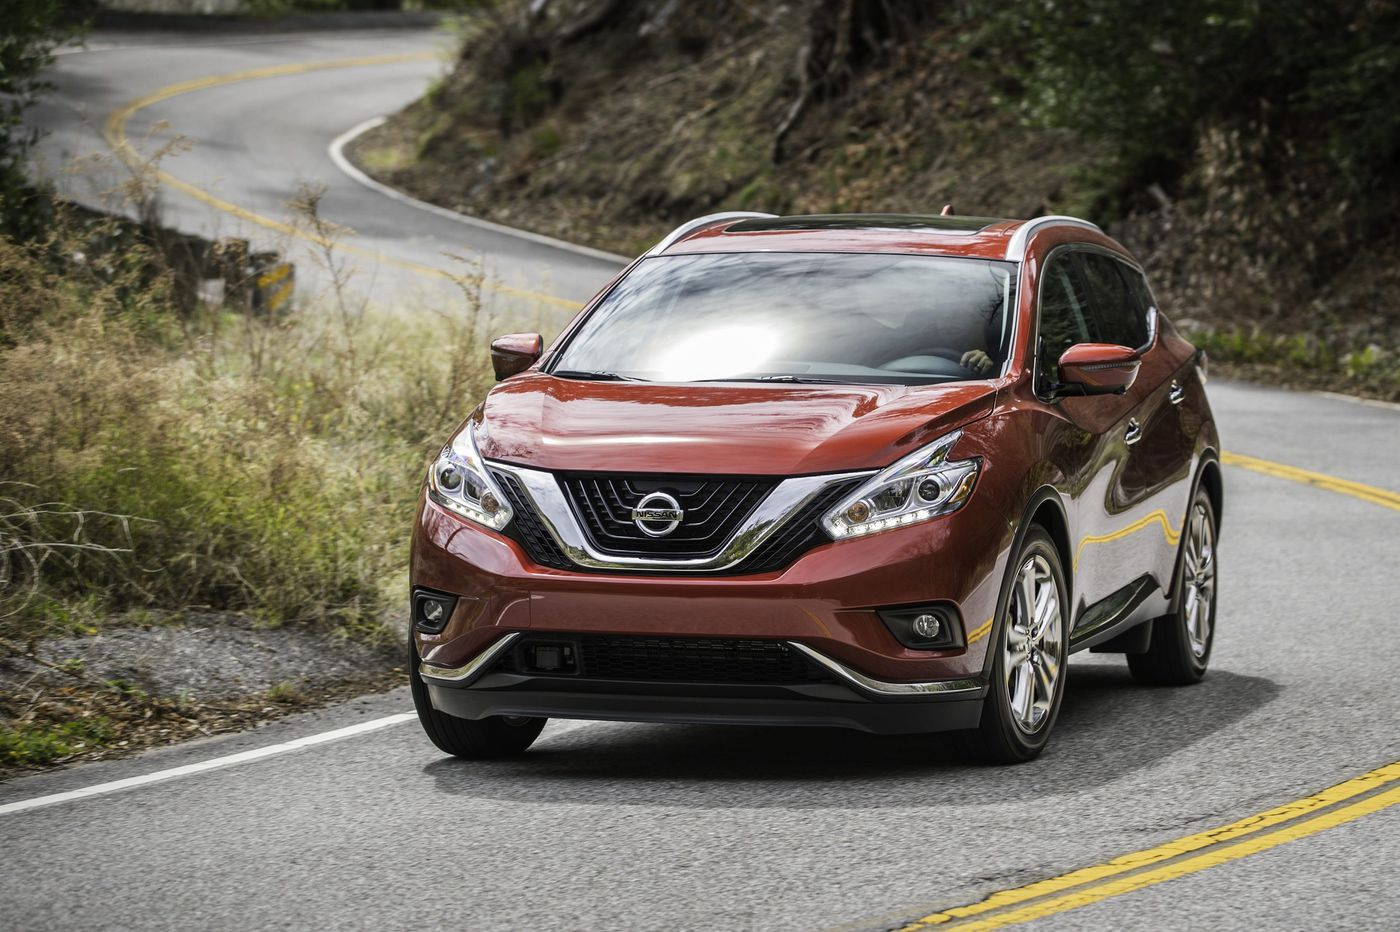 Stylish 2018 Nissan Murano disappoints on the curves   Scott Sturgis